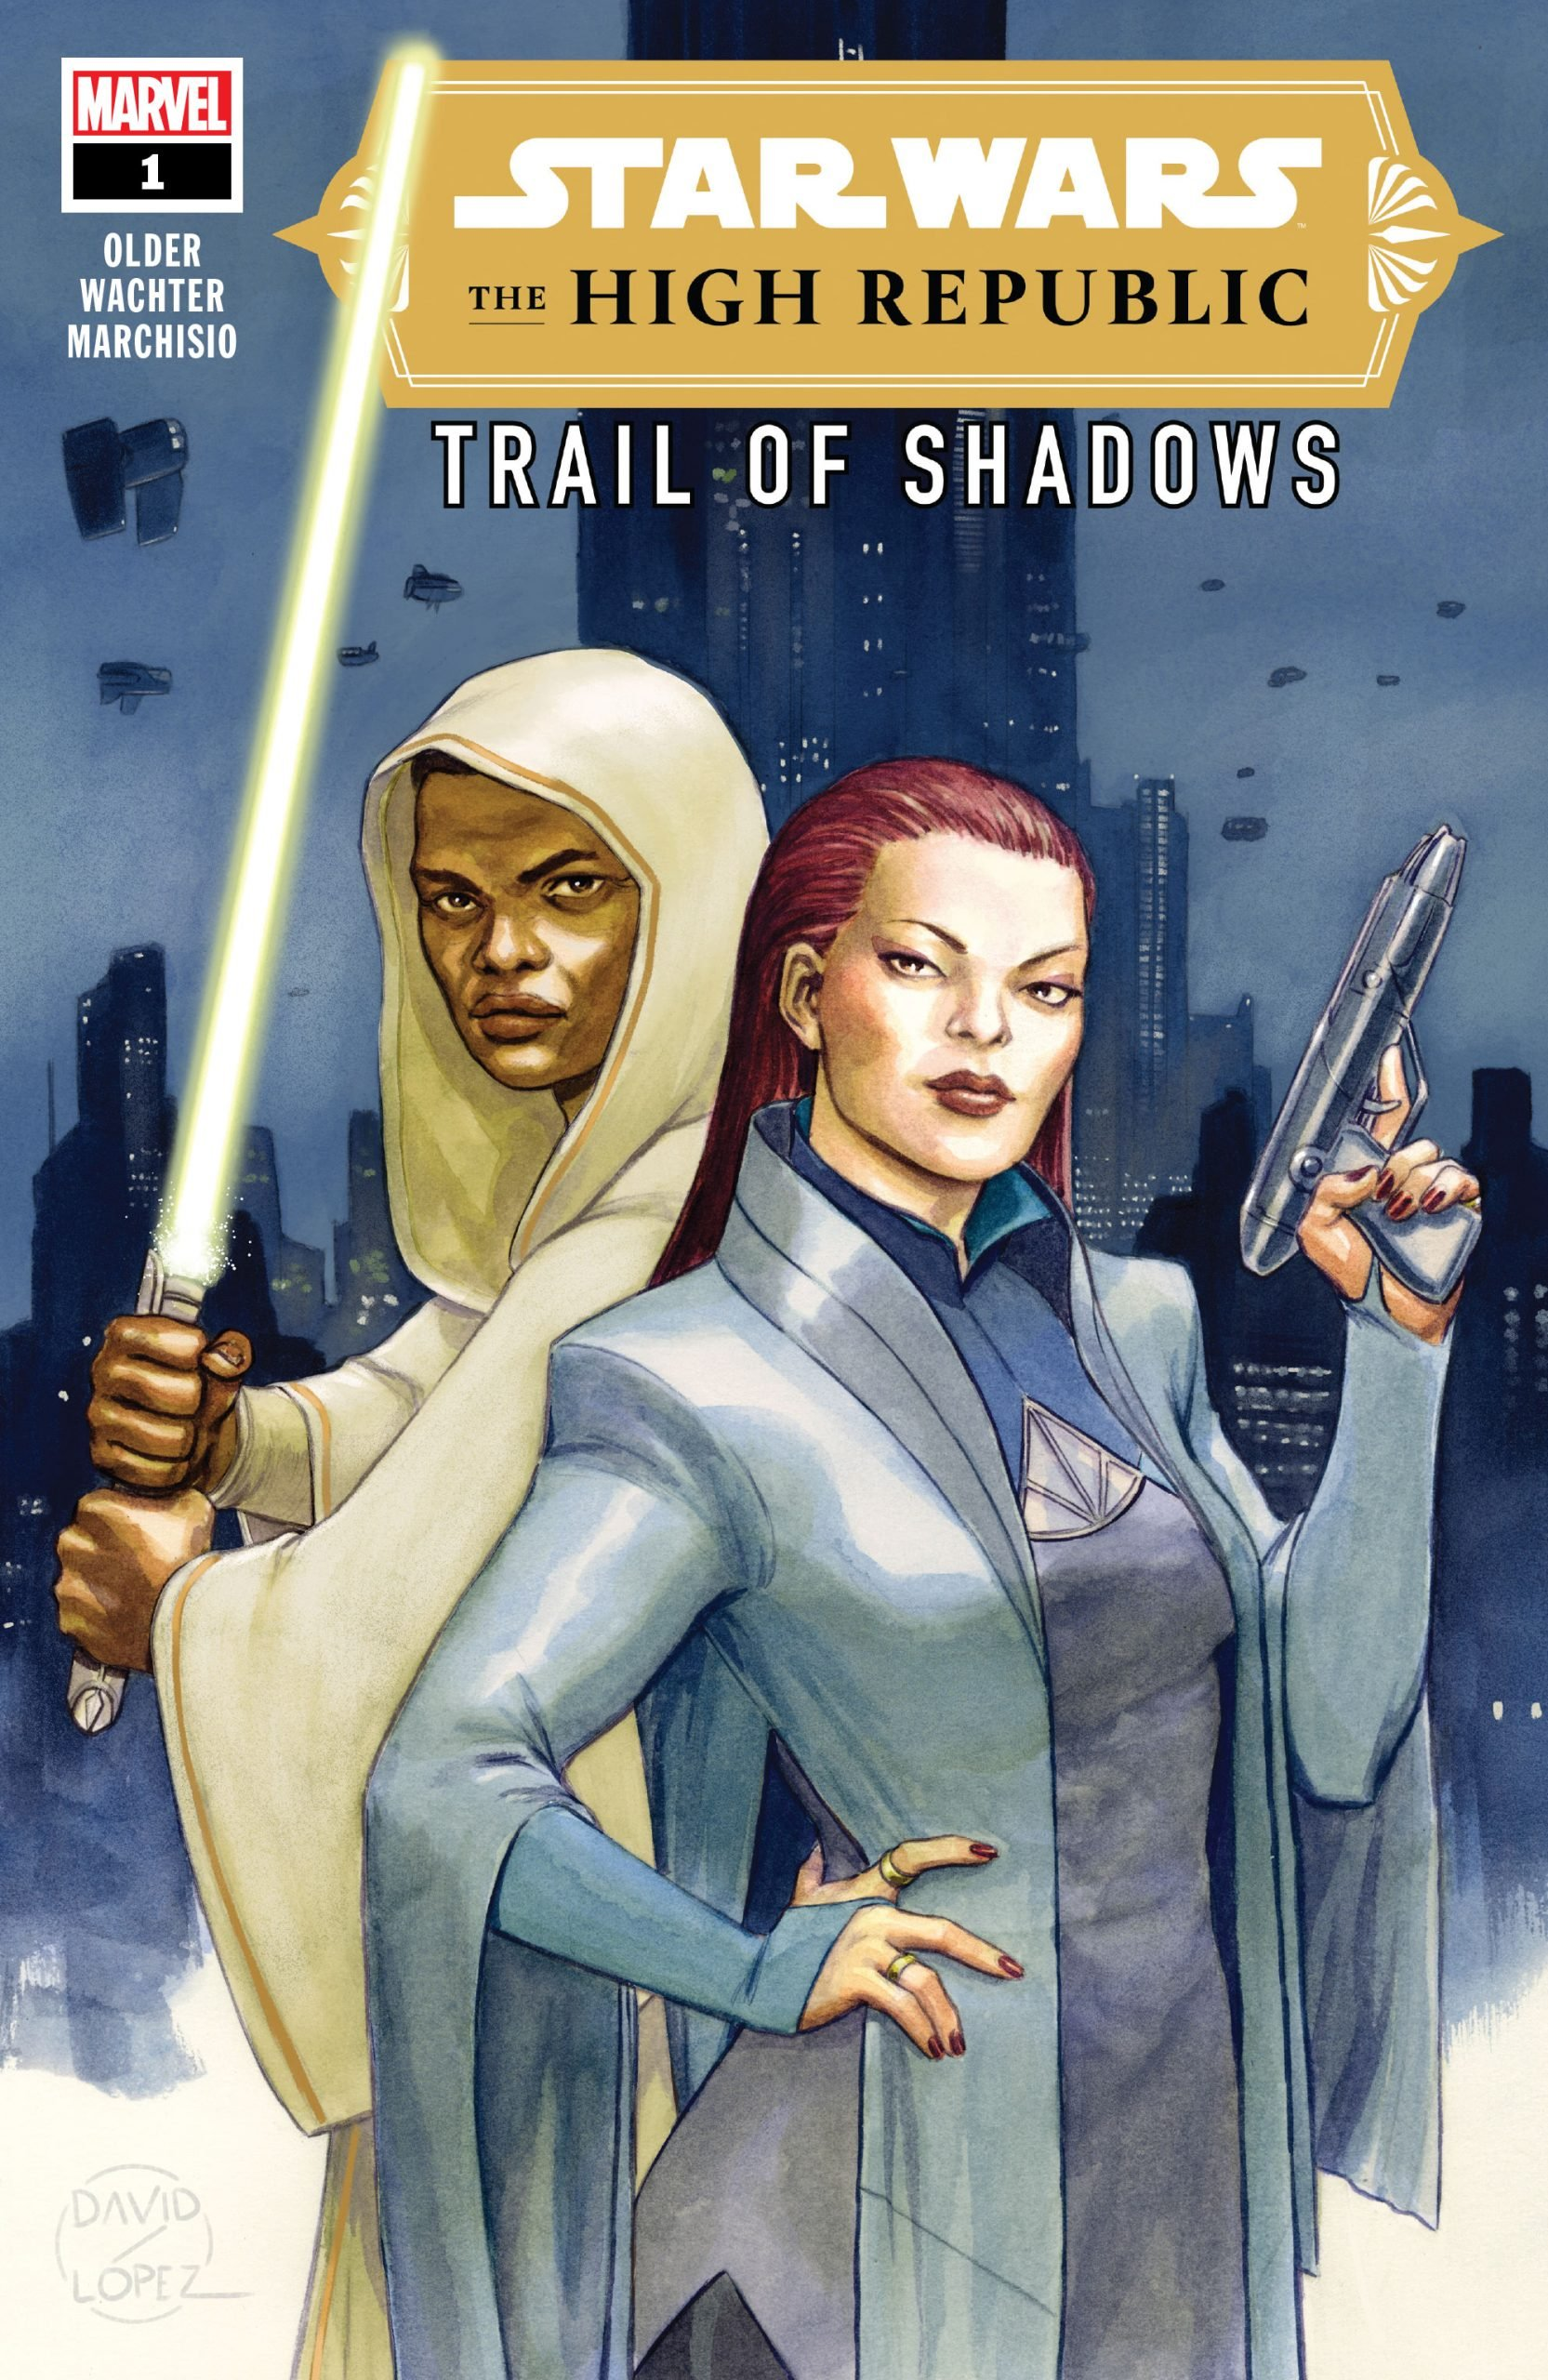 Review: Mysteries and Creepy Nursery Rhymes Abound in 'Star Wars: The High Republic – Trail of Shadows' #1